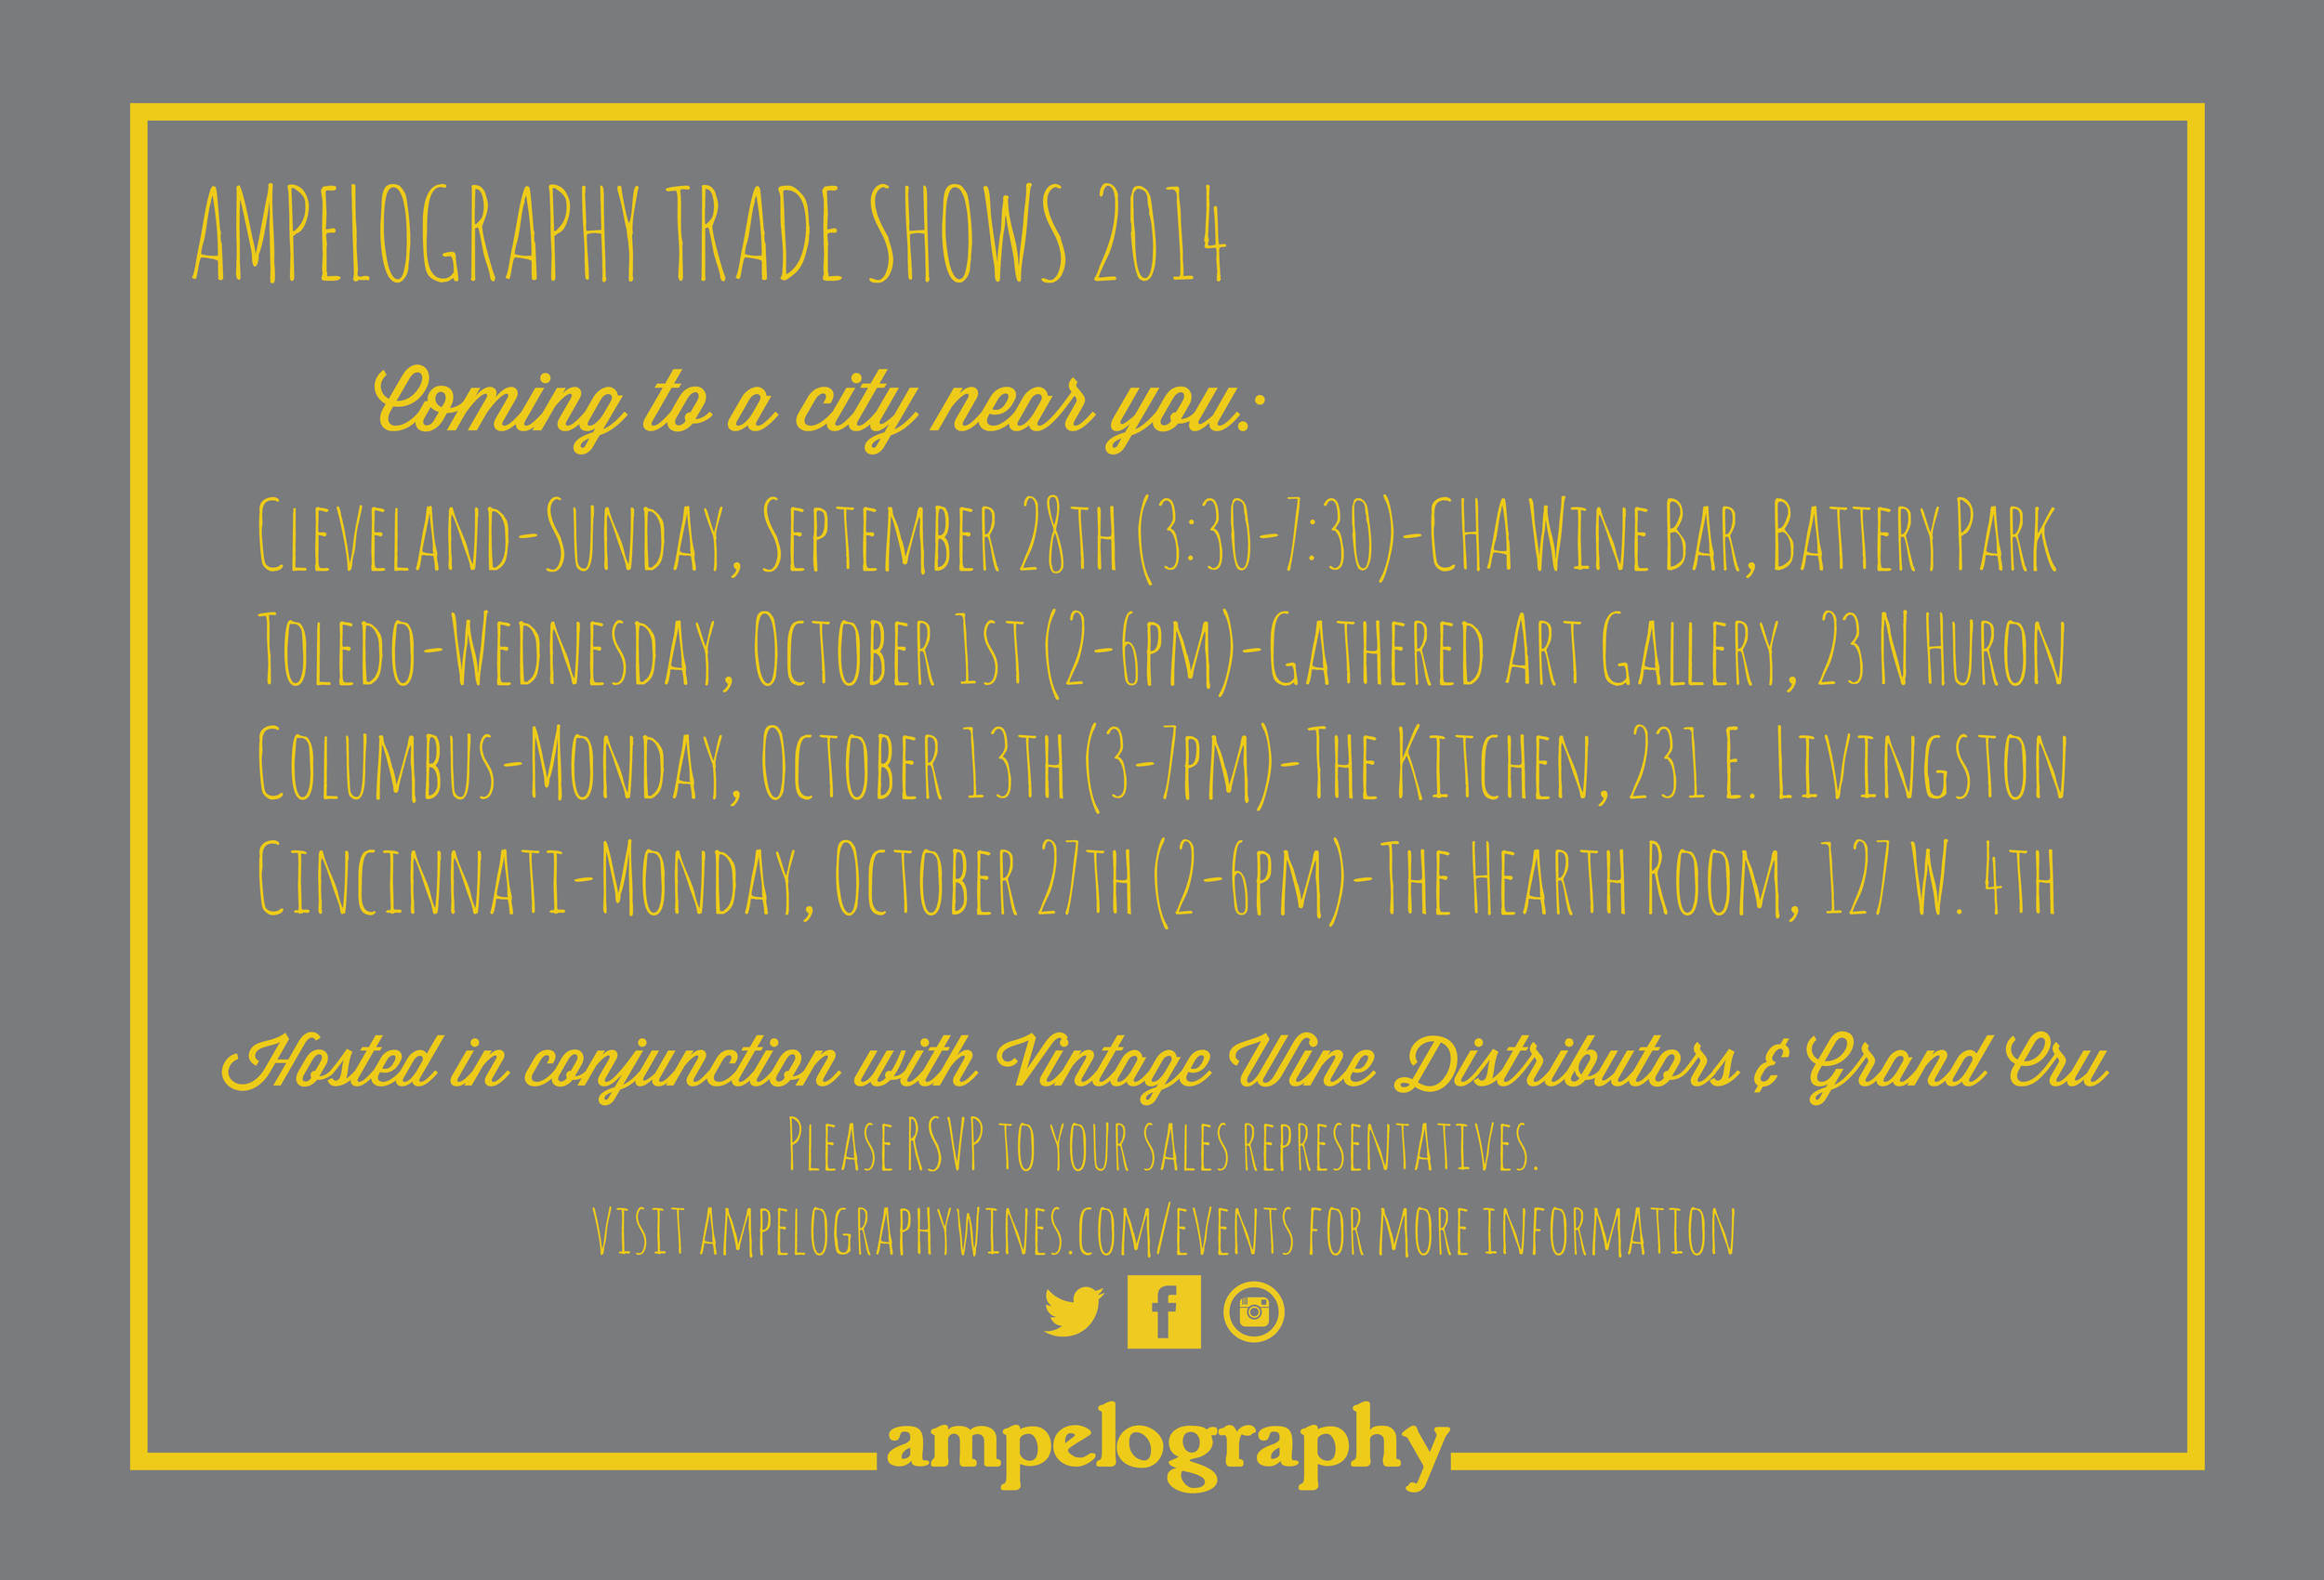 2014 Ampelography trade show invite back.jpg